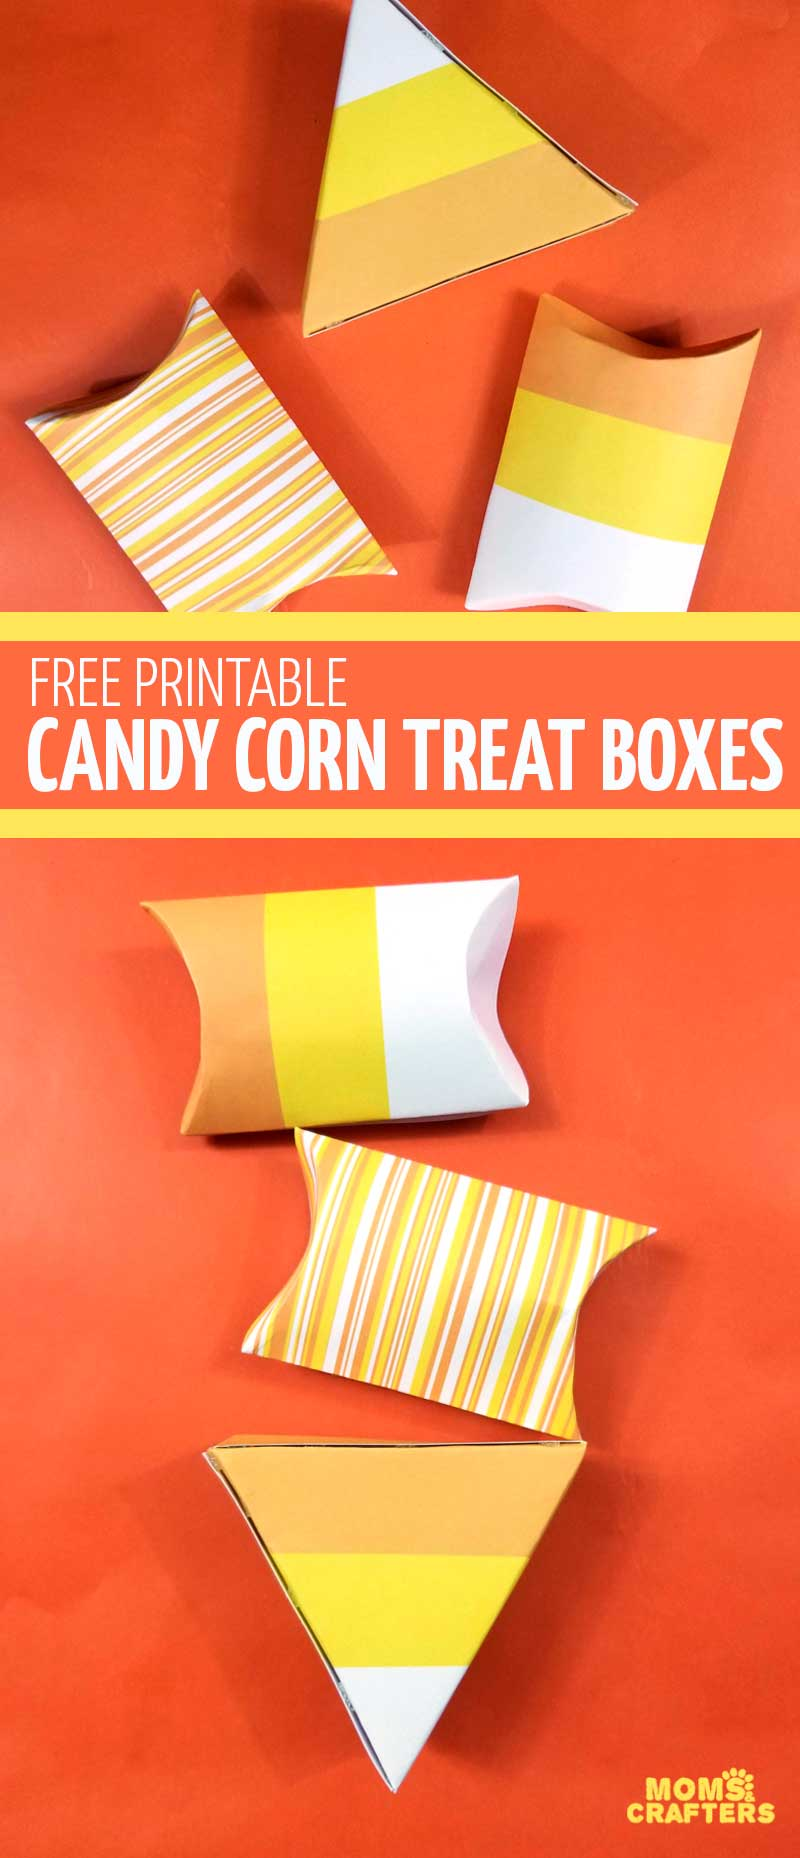 photograph relating to Candy Corn Printable named No cost Printable Sweet Corn Handle Containers * Mothers and Crafters